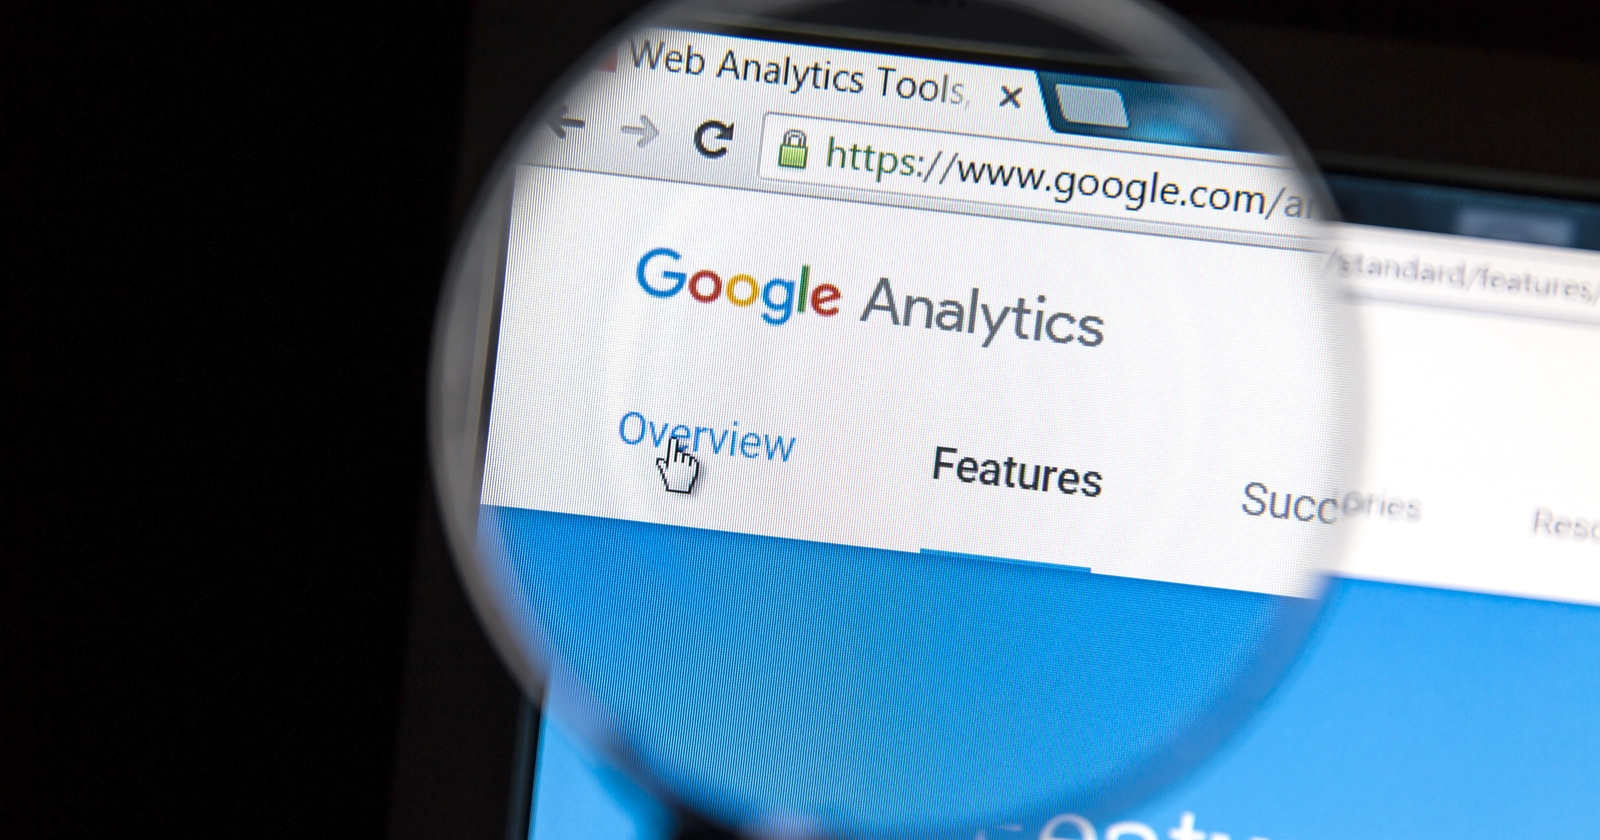 https://www.searchenginejournal.com/new-google-analytics-home-screen-now-available-50-users/202782/